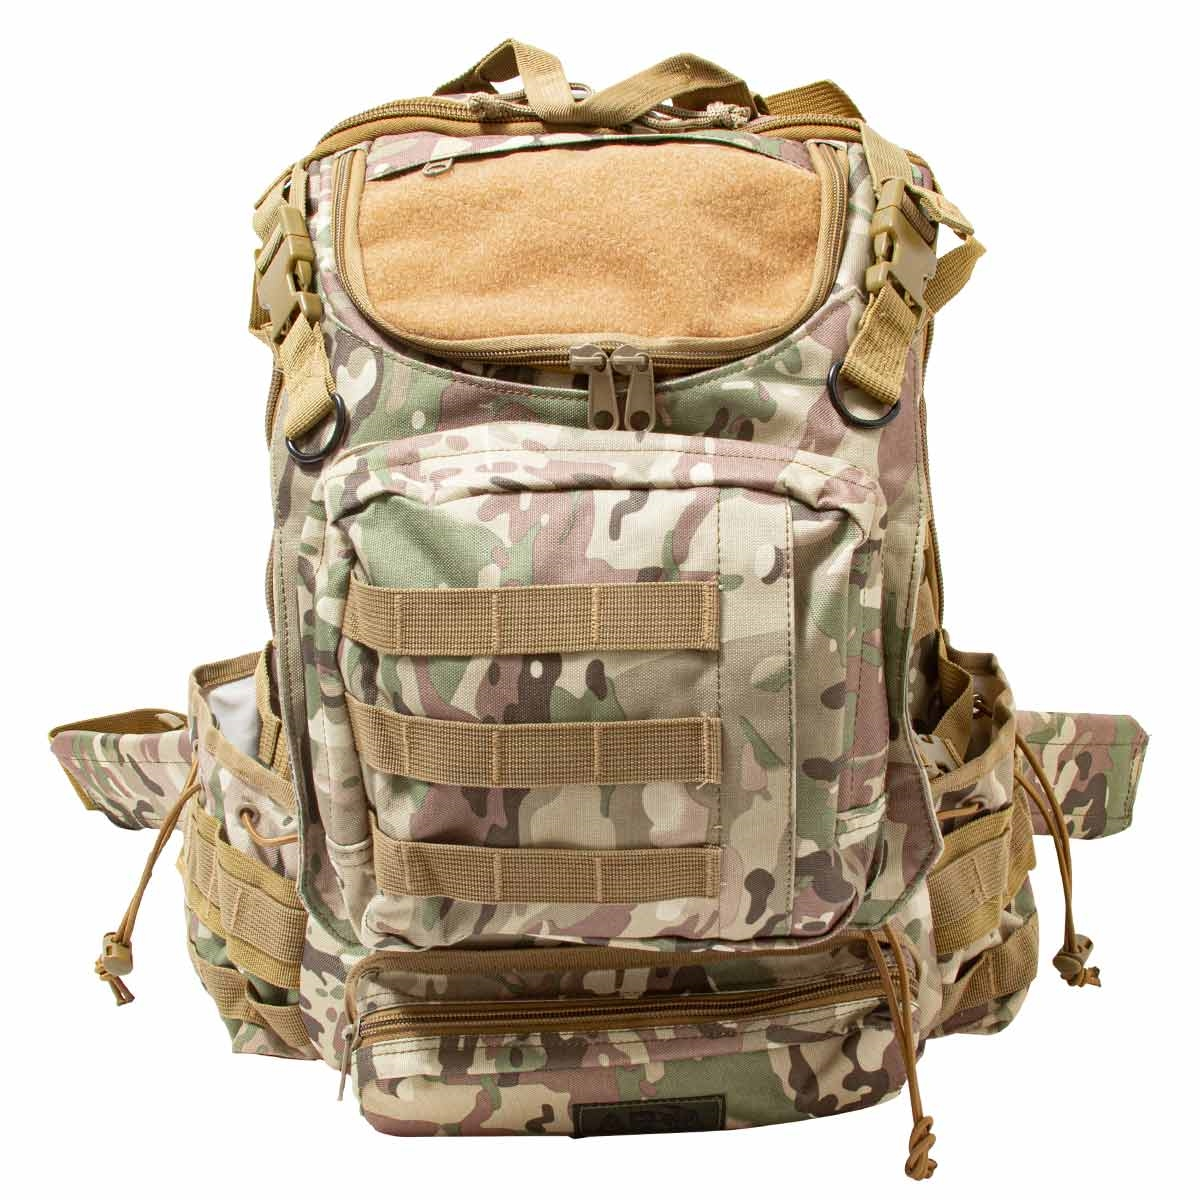 7782a4fd9 Mochila Tática 3 Day Assault Pack - Camuflada BK5044 - VentureShop